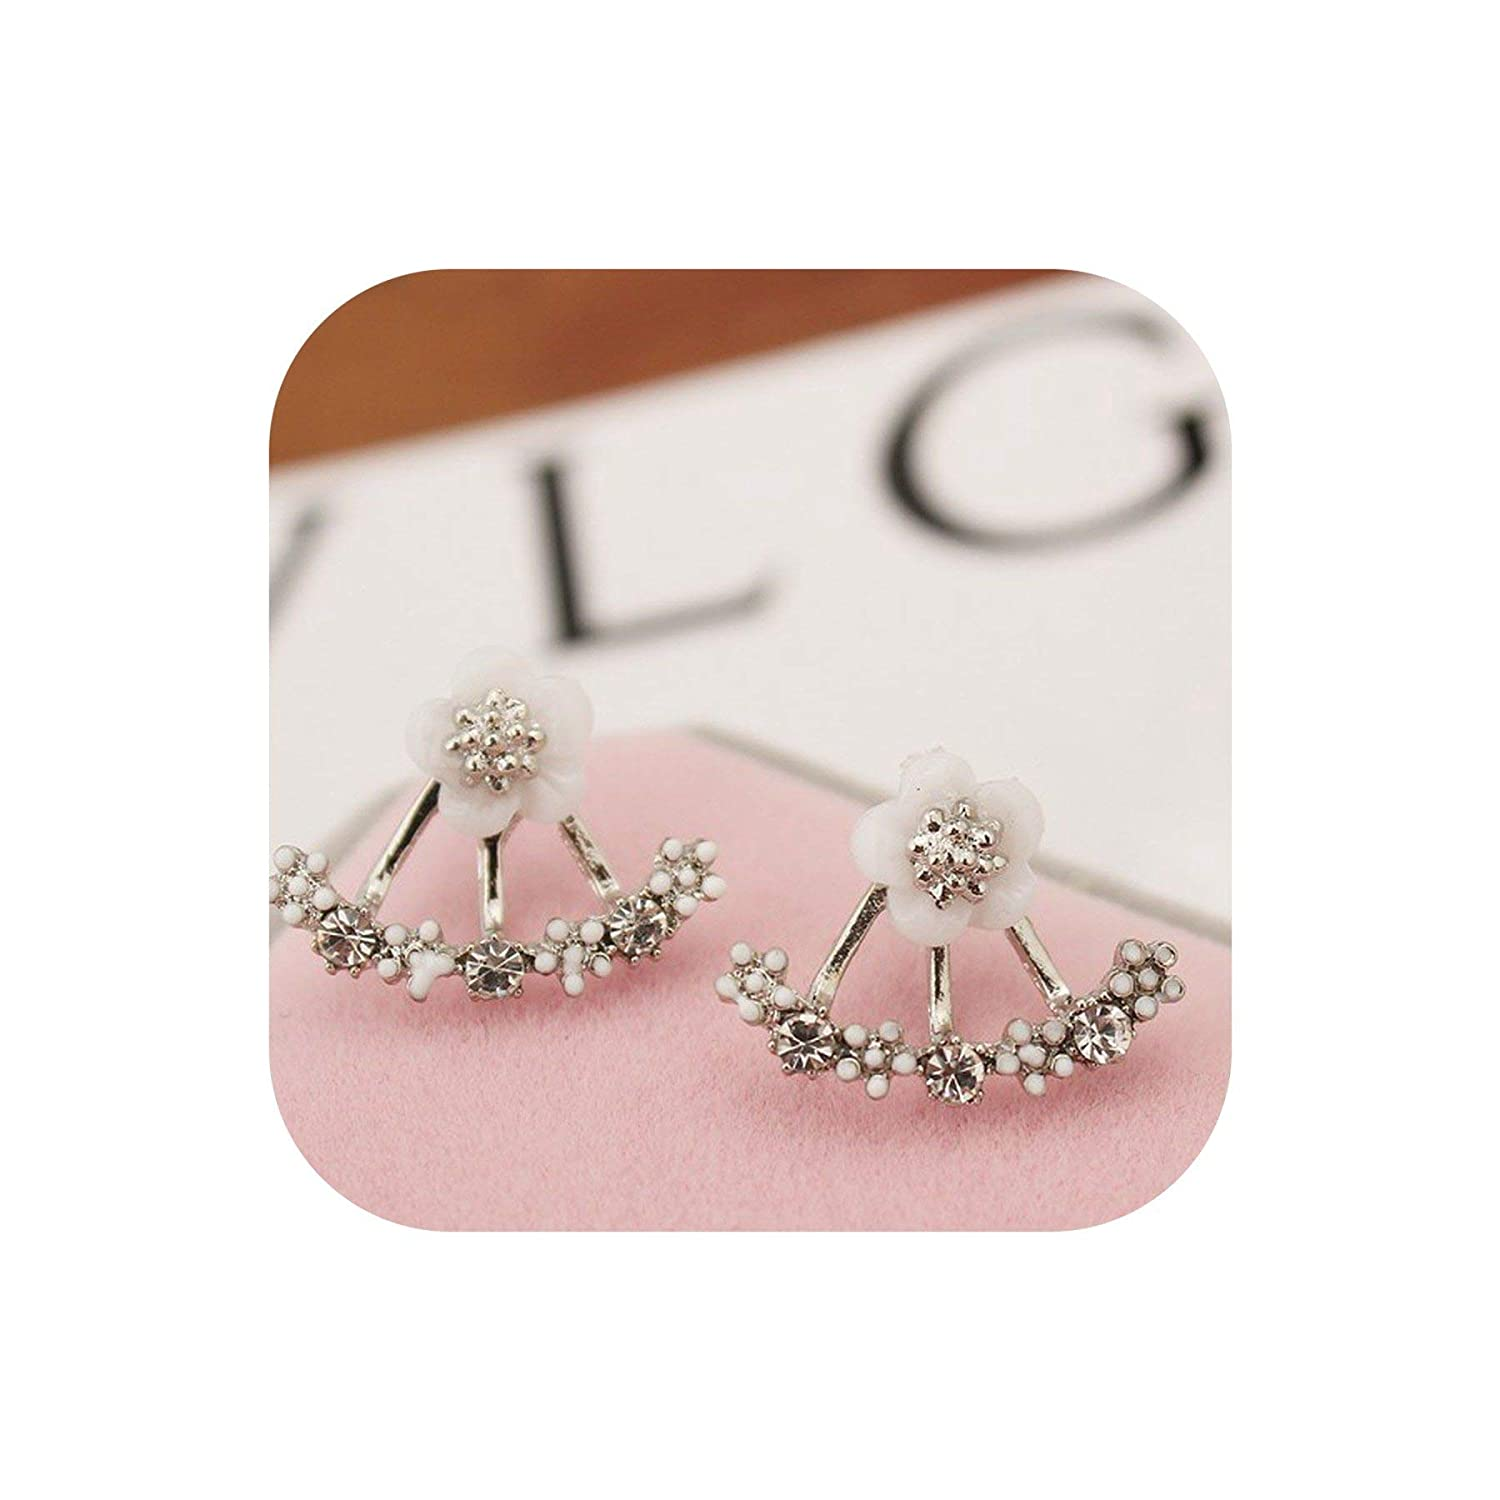 Jewelry Cute Cherry Blossoms Flower Stud Earrings For Women Several Peach Blossoms Earrings